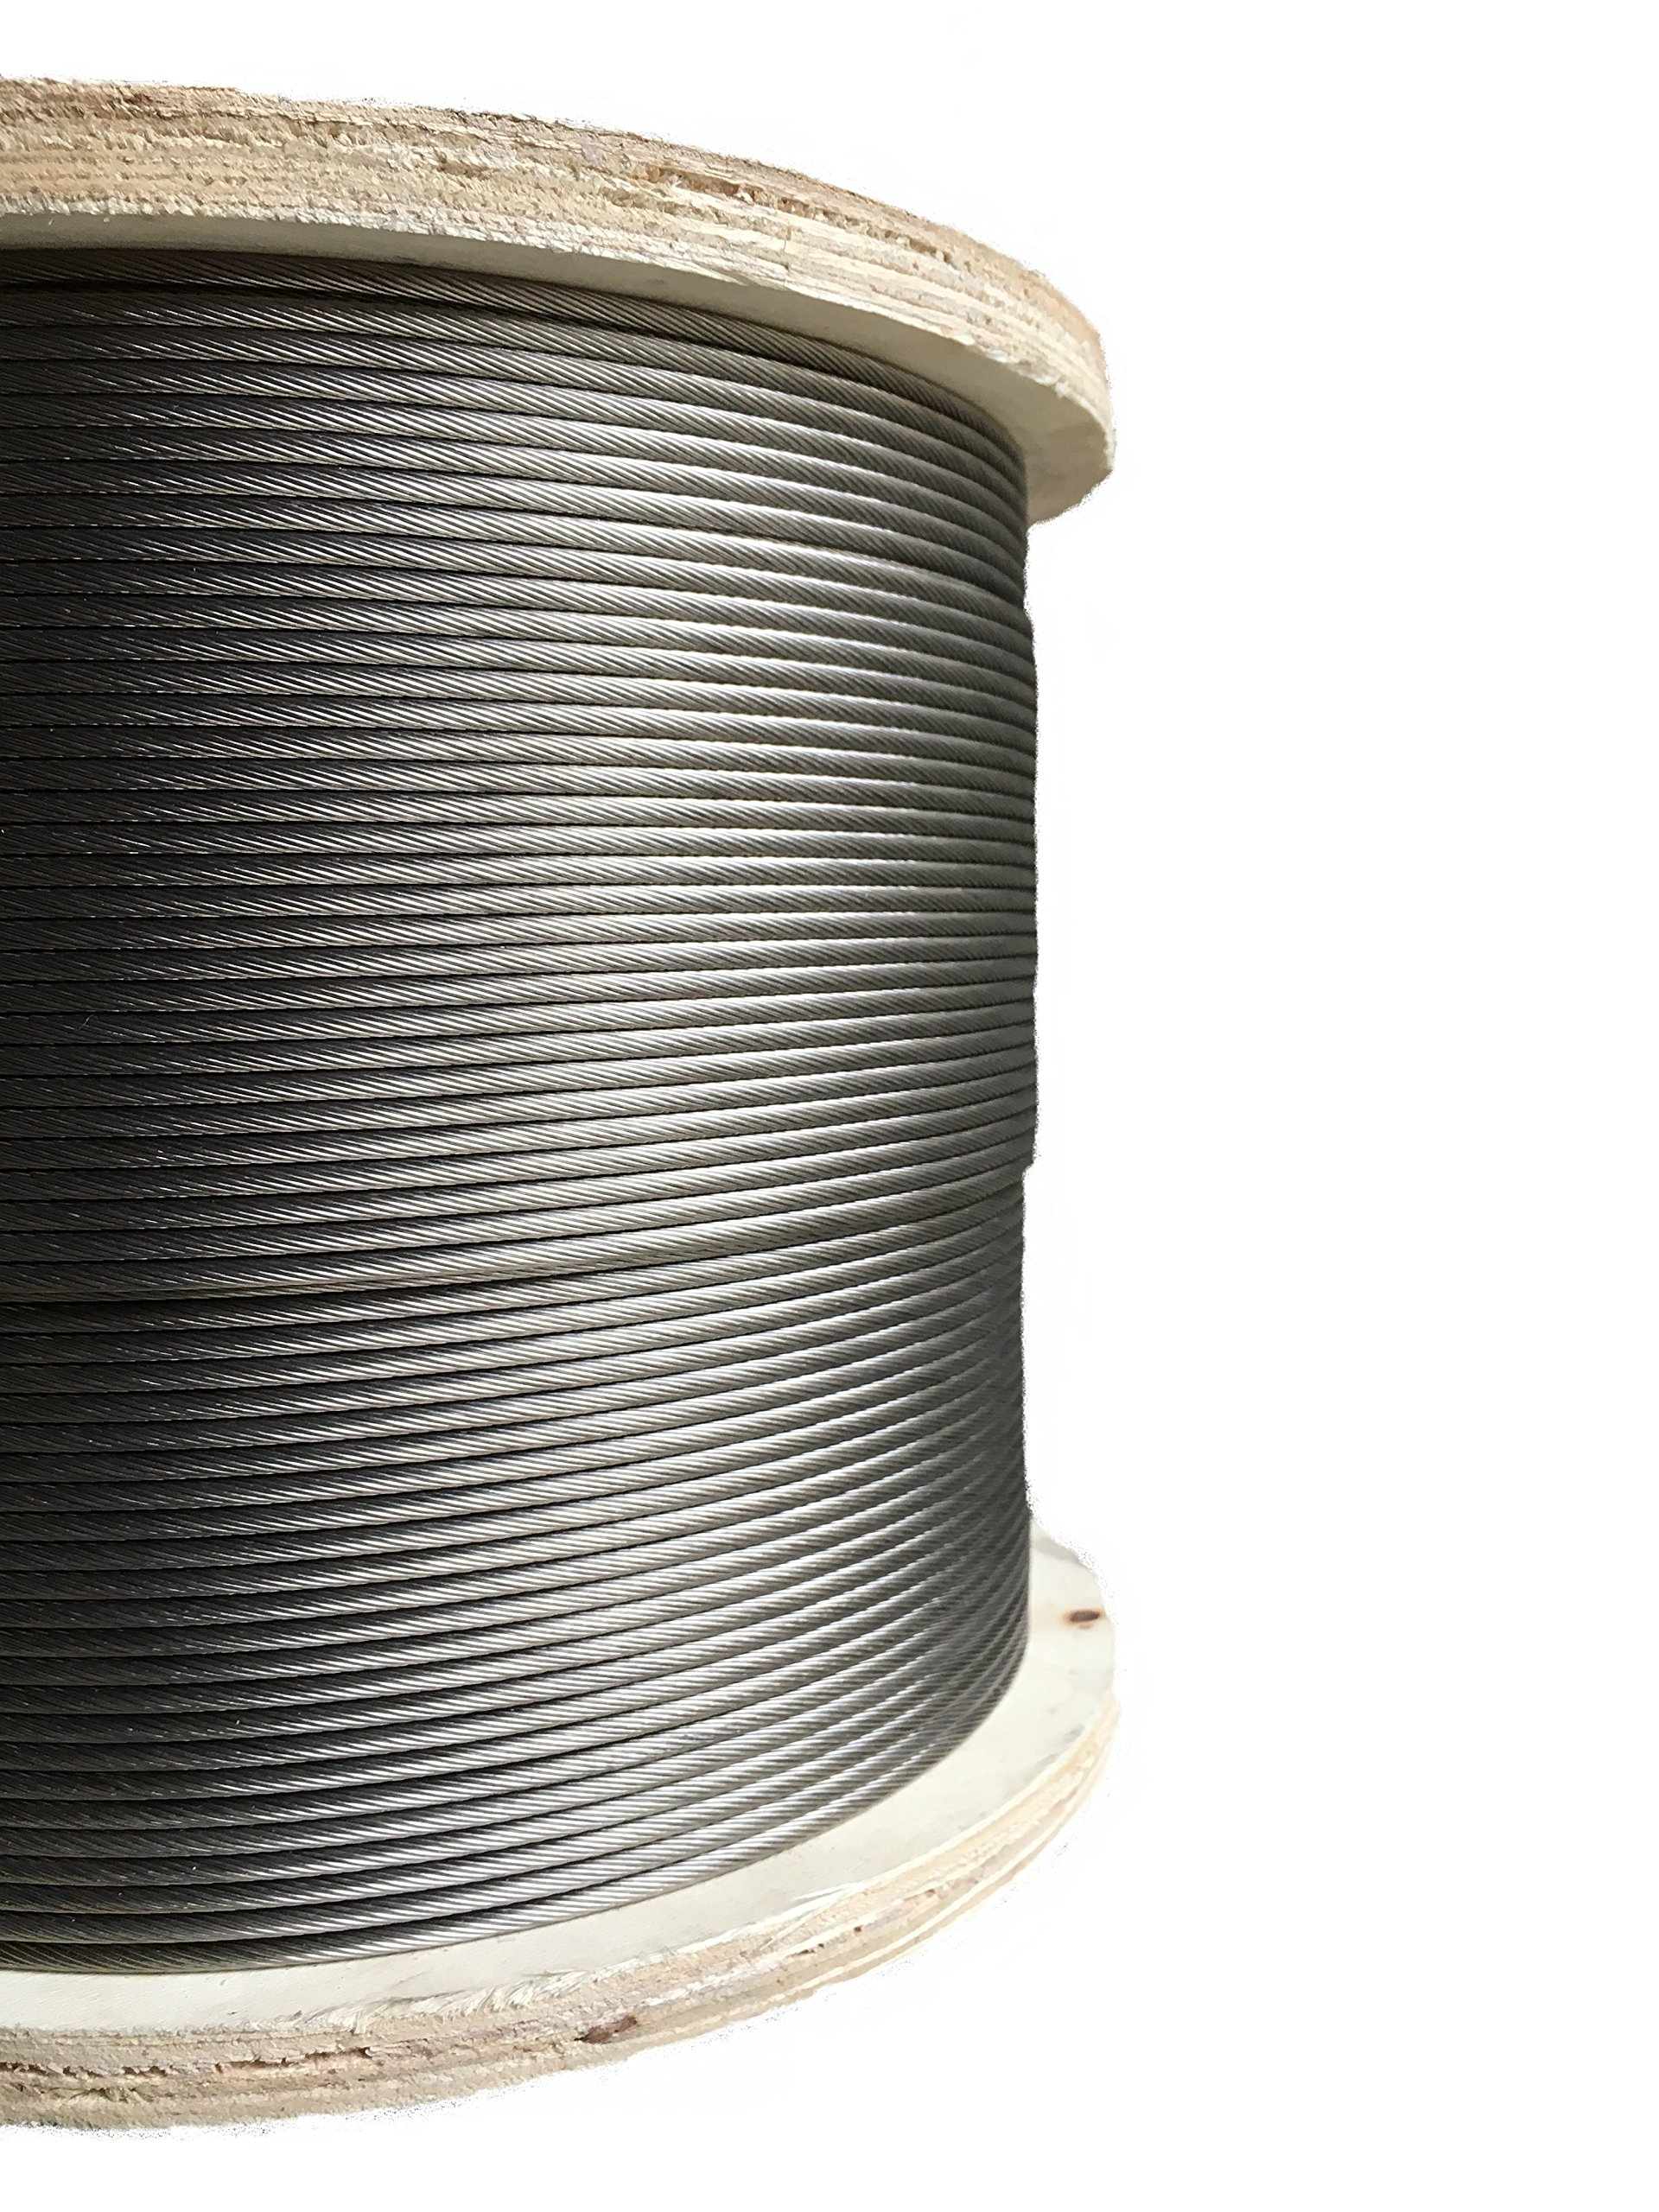 Stainless Steel Aircraft Cable 1/8'' 1x19 Type 316 Grade 250ft